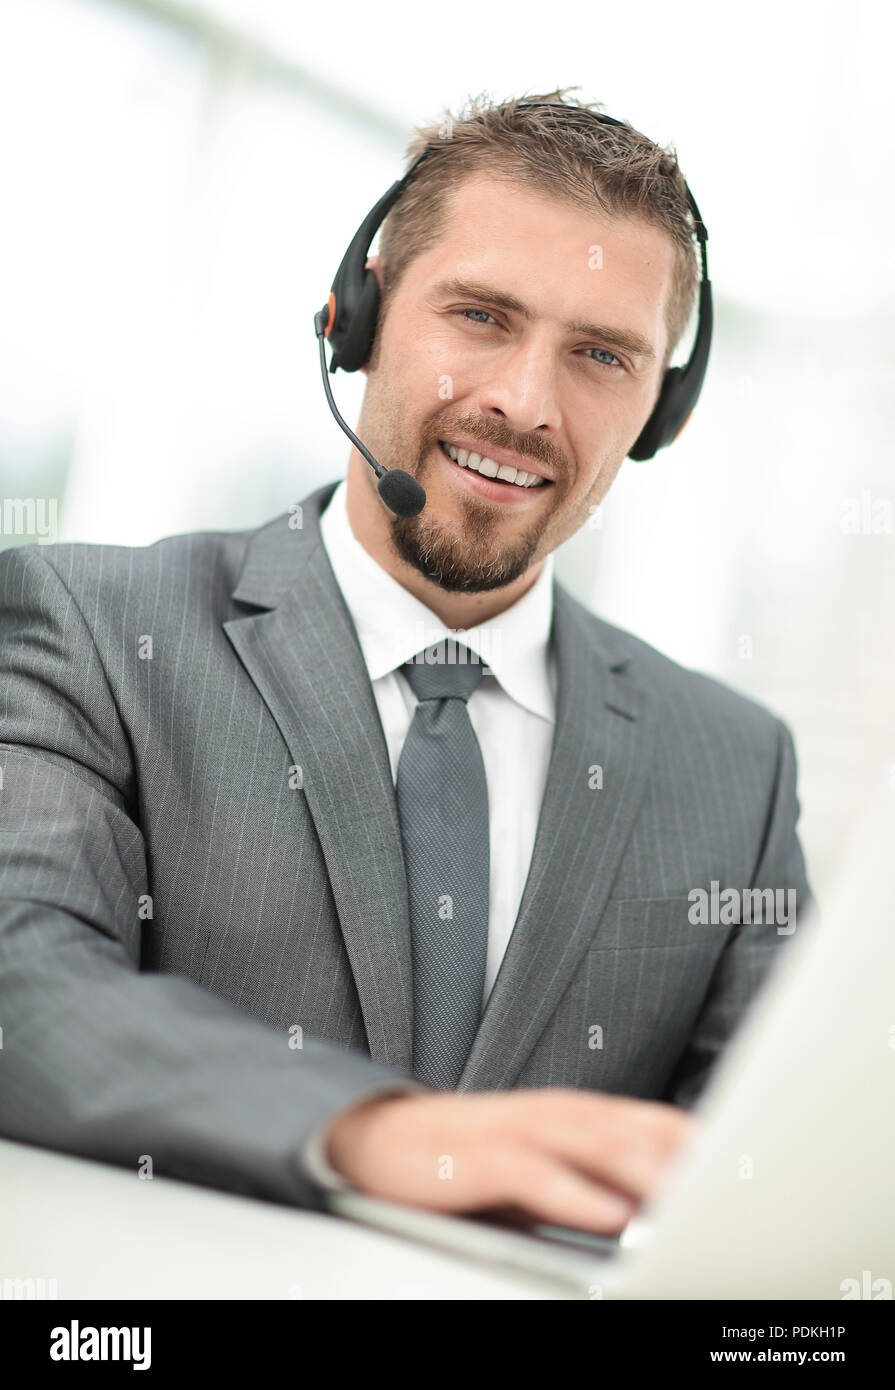 young agent of the call center with the headphones. - Stock Image